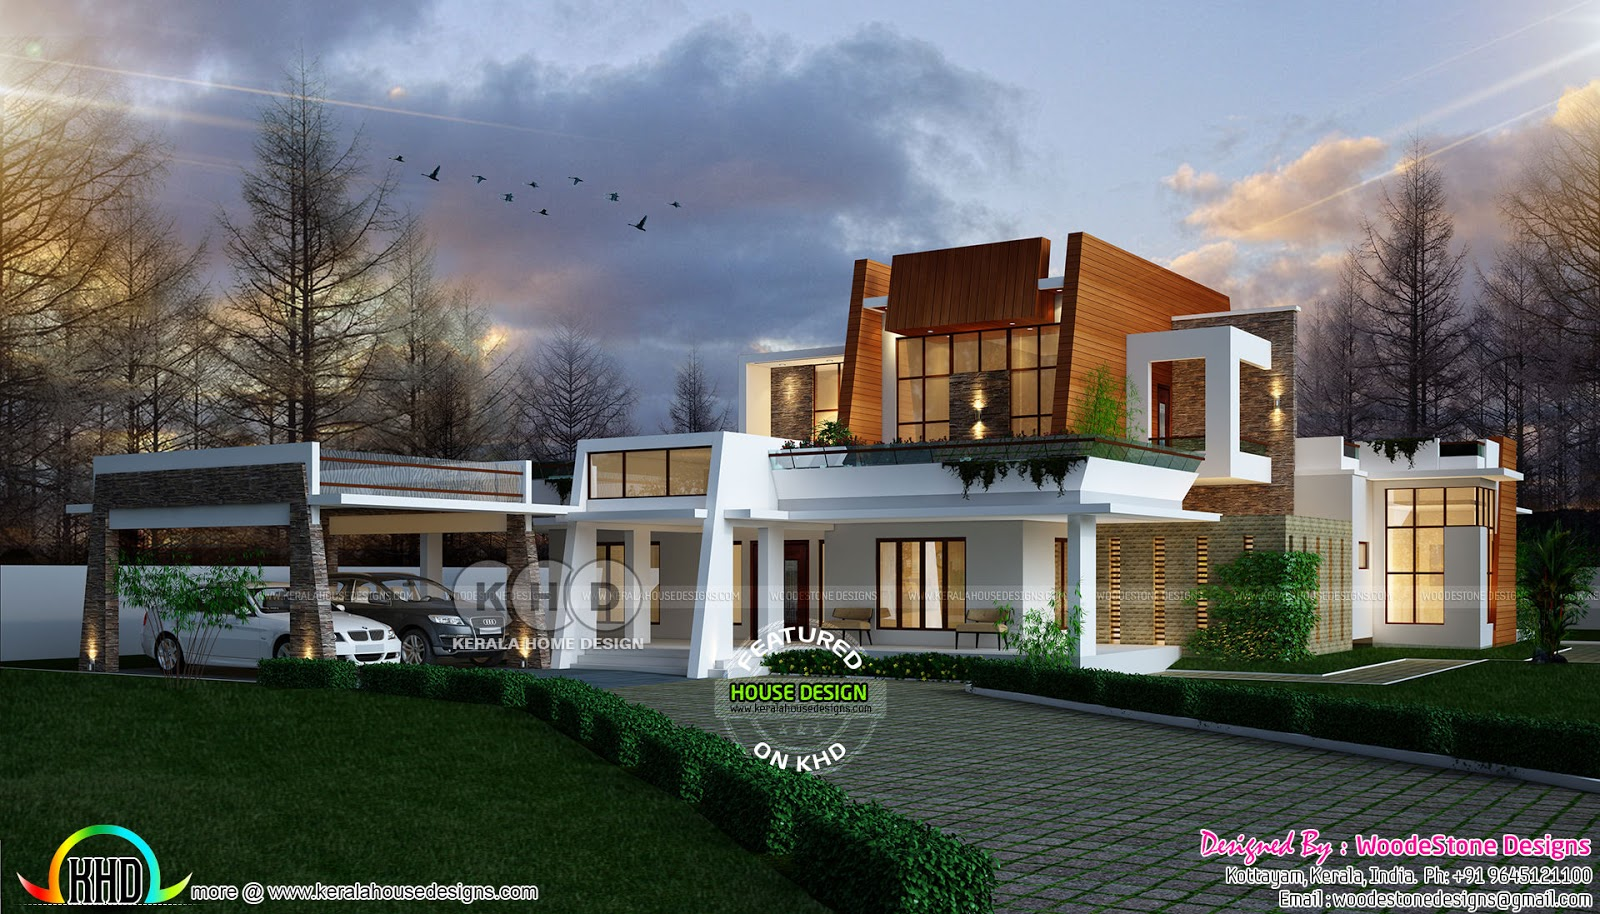 Superieur 4 Bedroom Contemporary Home By WoodeStone Designs From Kottayam